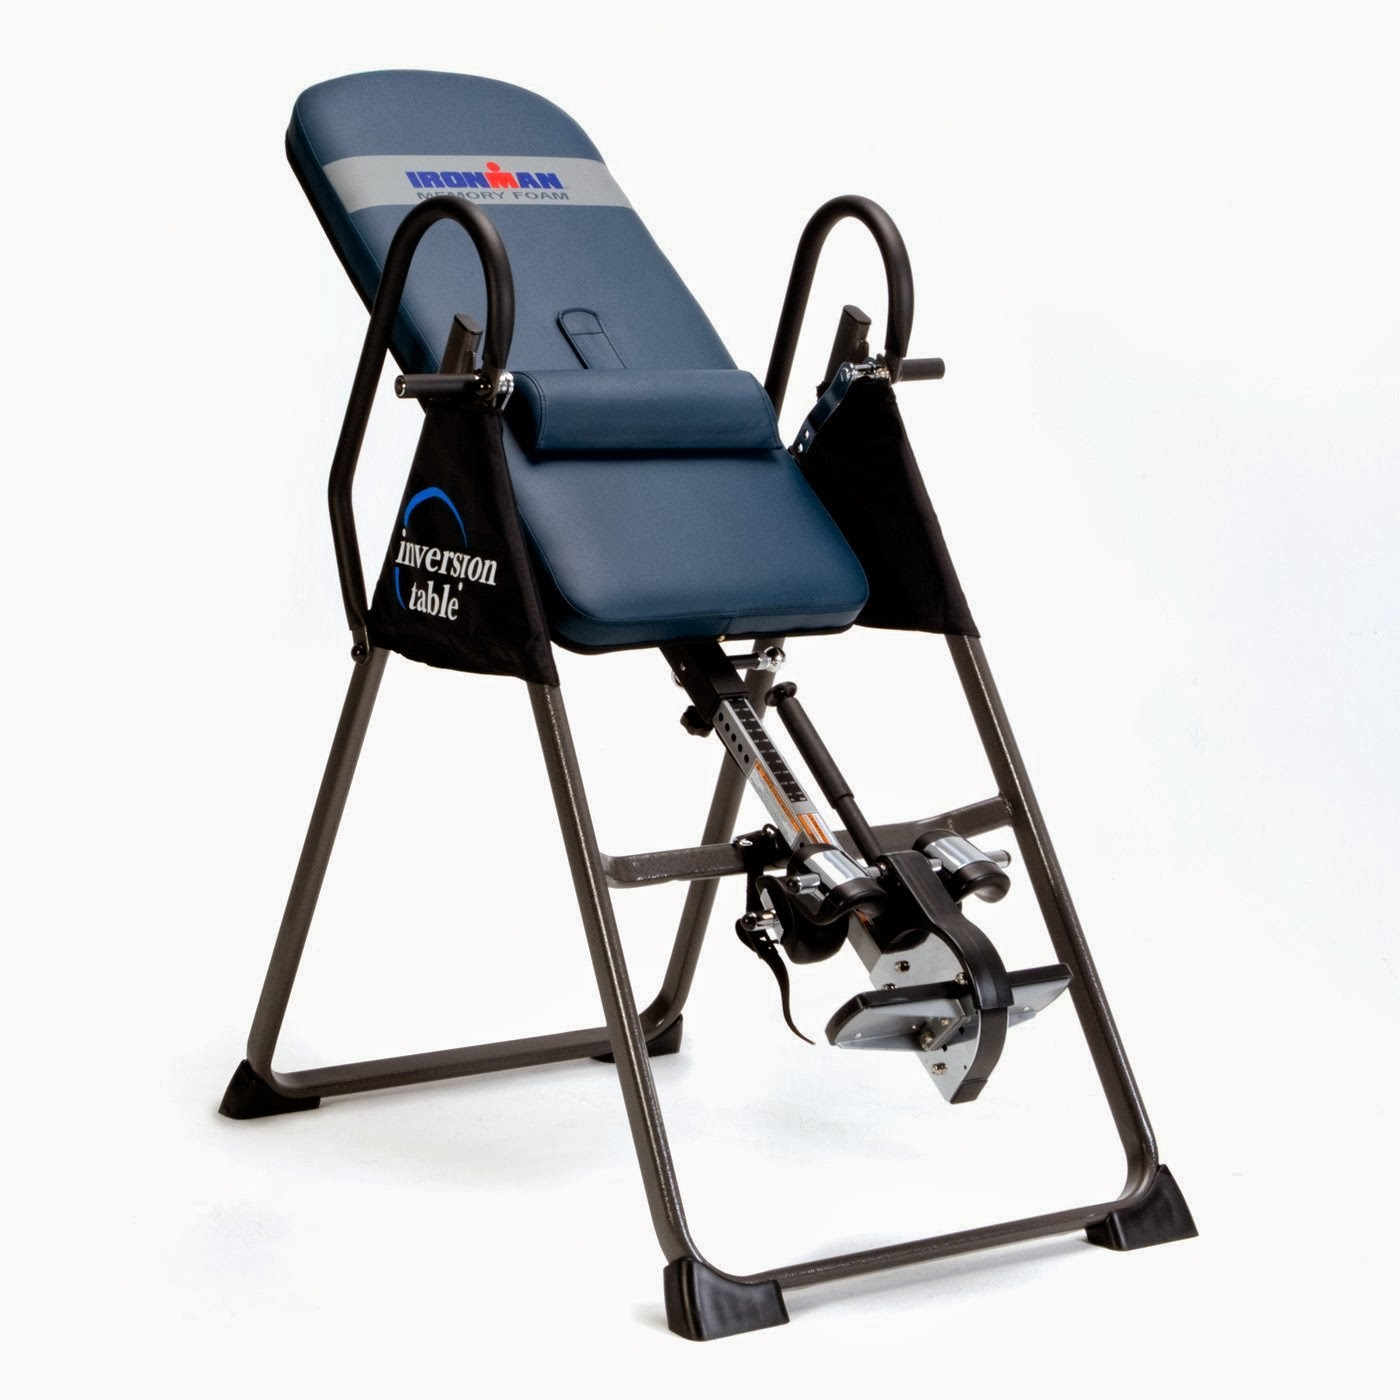 Ironman Gravity 4000 Inversion Table, picture, review features & specifications, compare with Ironman Gravity 2000